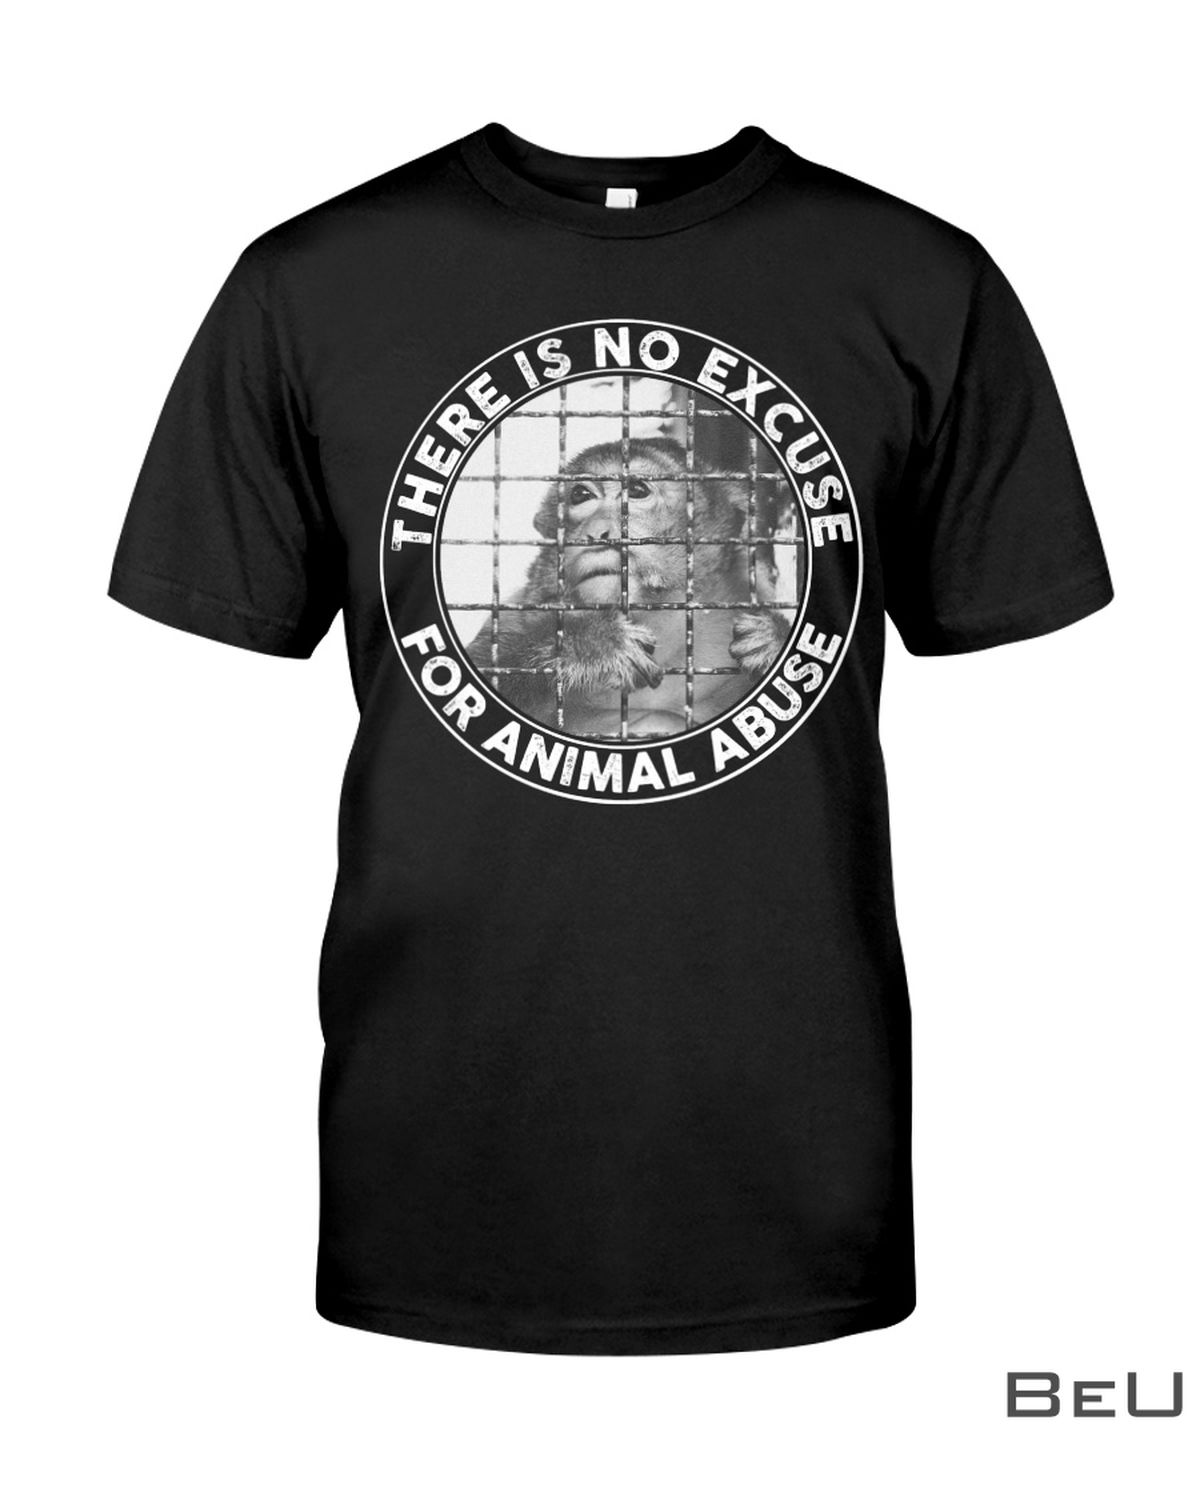 The Is No Excuse For Animal Abuse Shirt